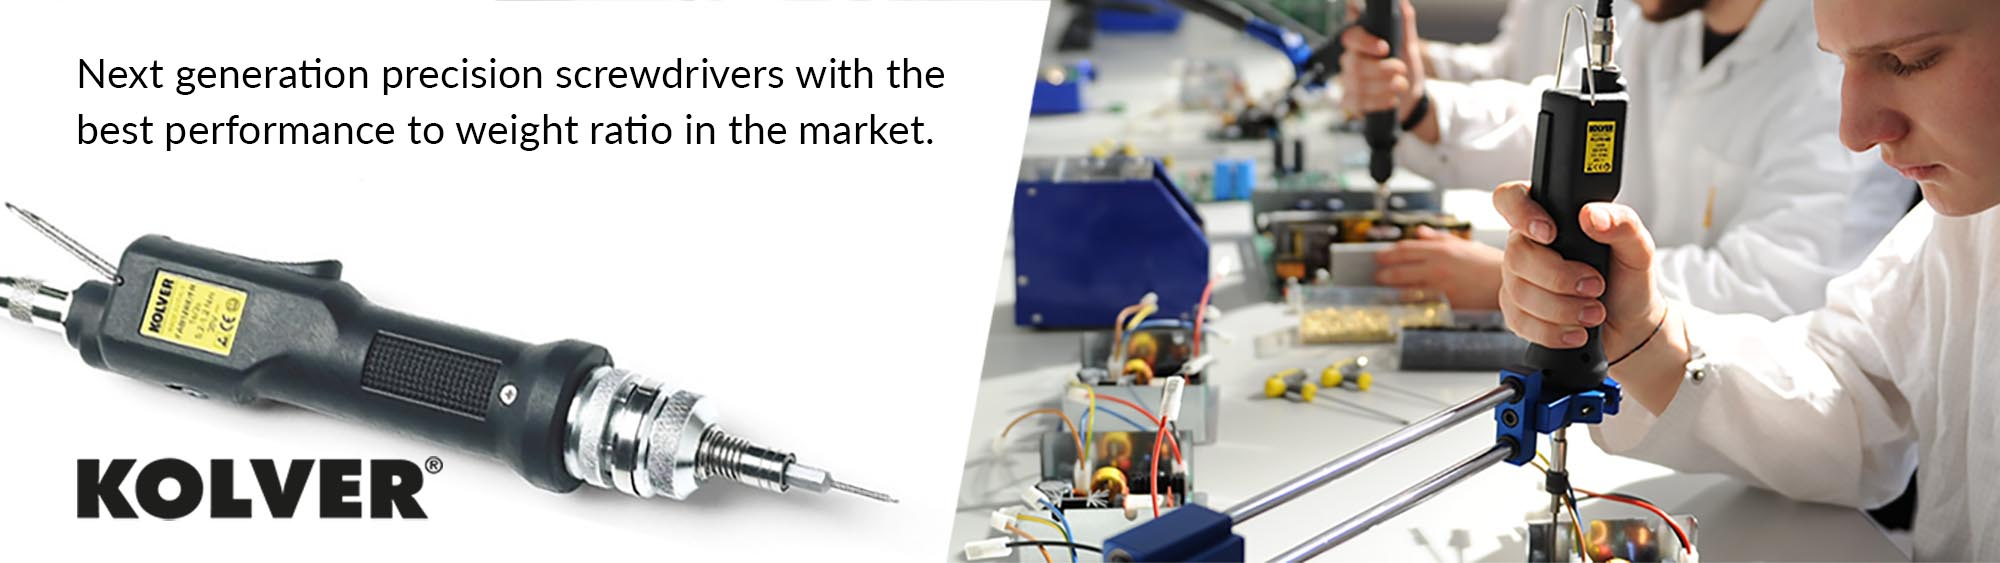 Kolver screw drivers